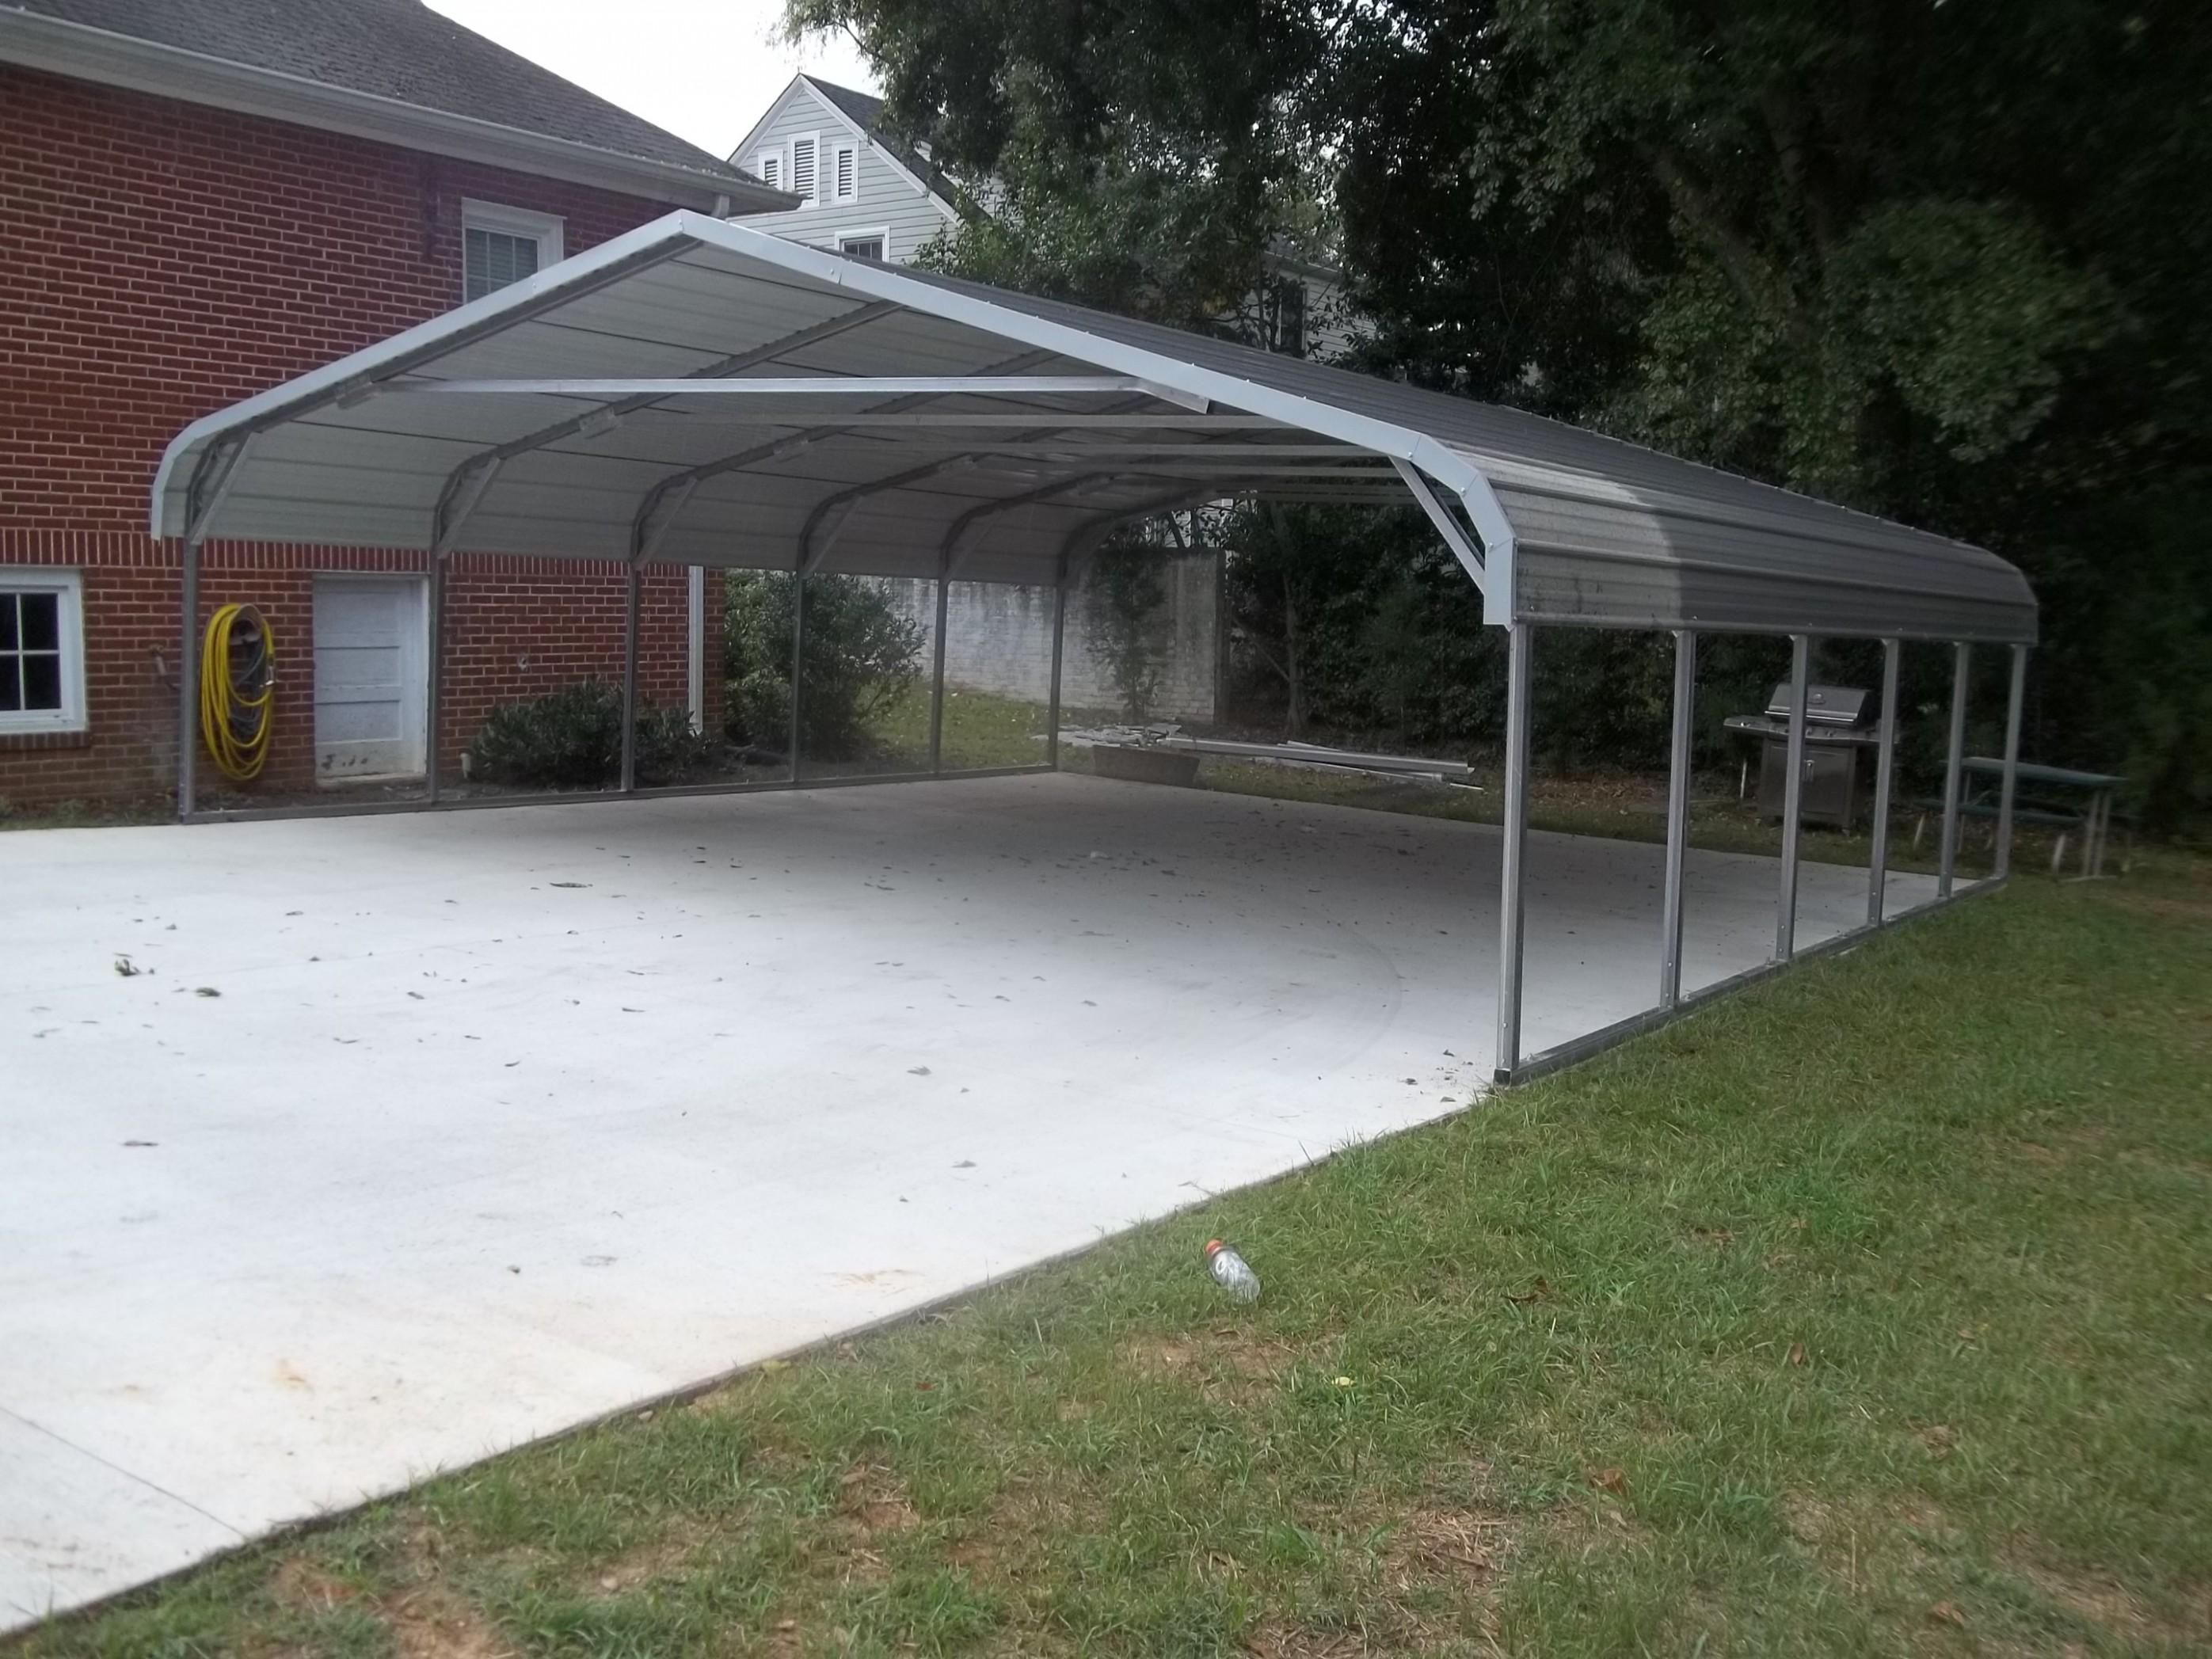 13 Brilliant Ways To Advertise Florida Carport Dealers | florida carport dealers